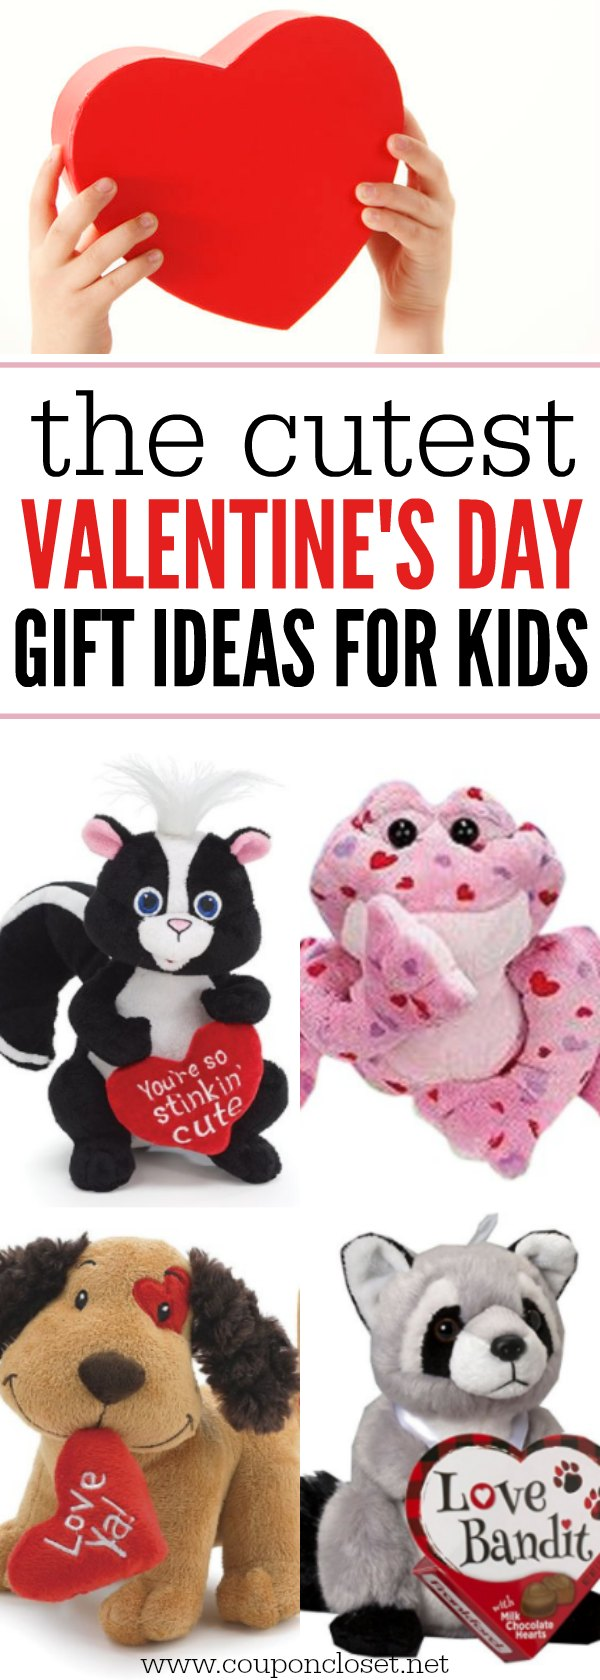 Looking for Valentine gift ideas? 25 fun and frugal Valentine Gifts for kids that they will love. Check out one of these Valentine Gift ideas for kids this year.